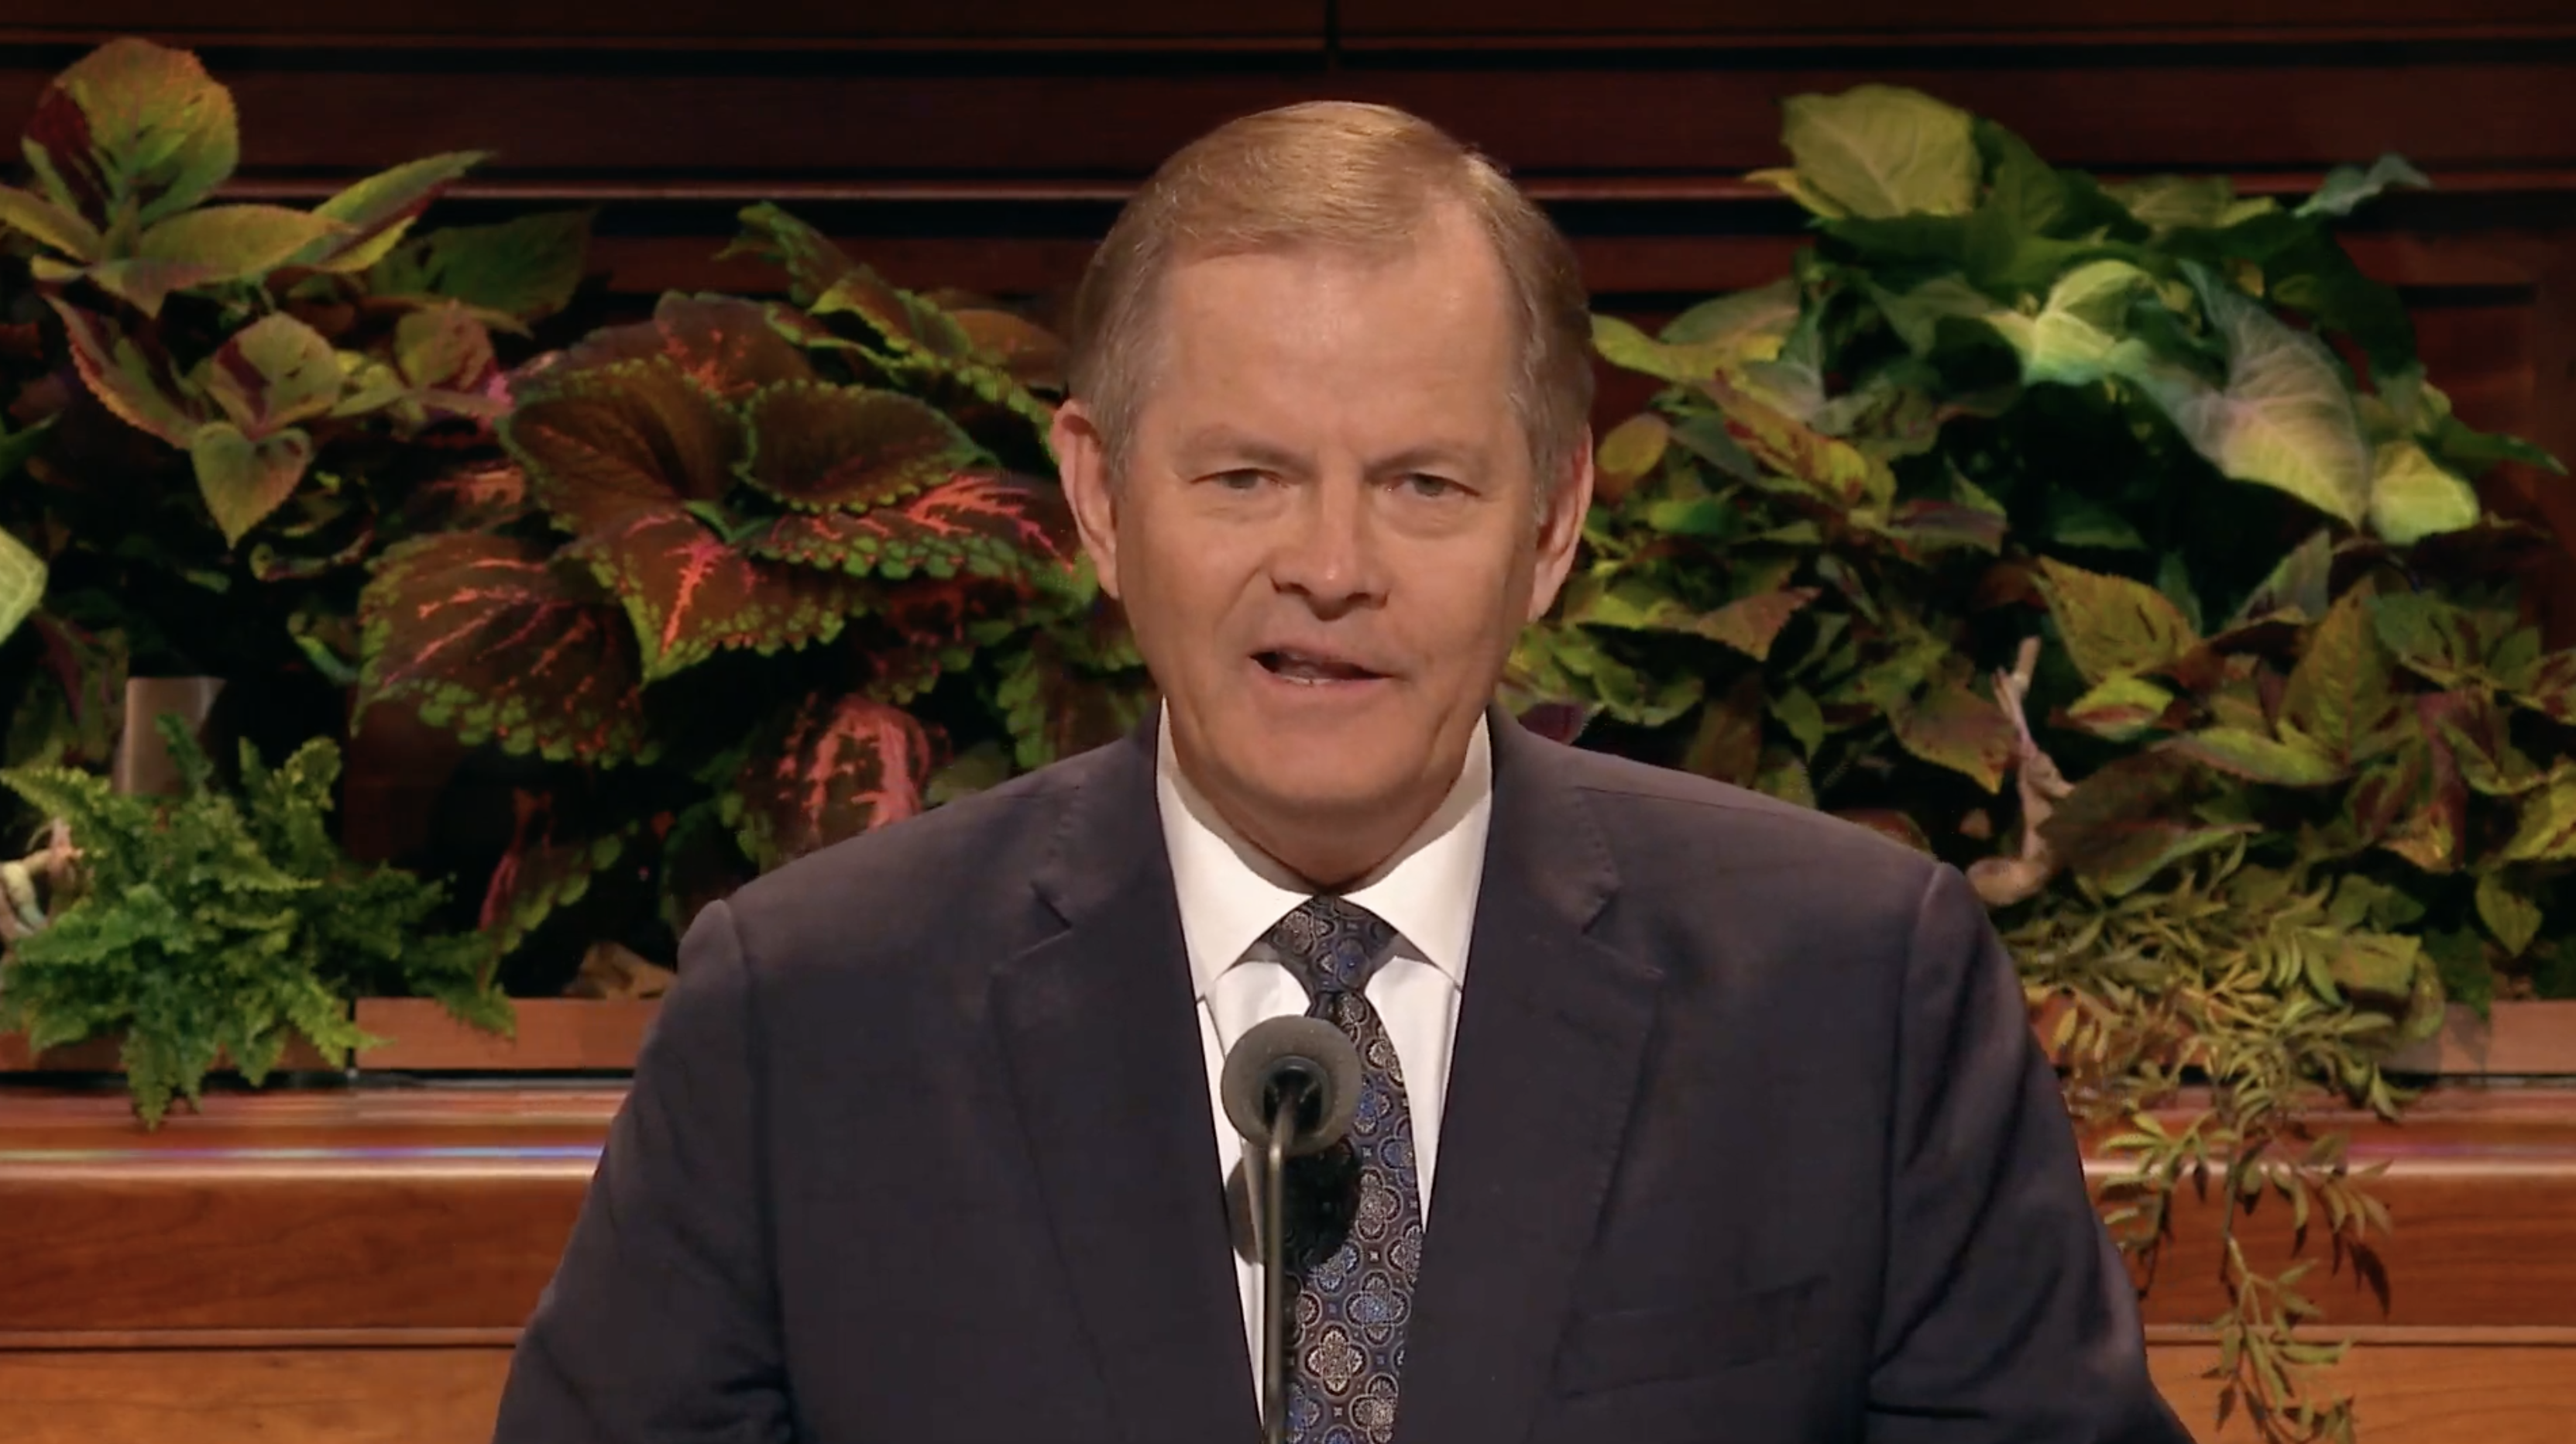 Elder Gary E. Stevenson of the Quorum of the Twelve Apostles speaks during the Sunday morning session in the 189th Semiannual General Conference of the Church on Oct. 6, 2019.